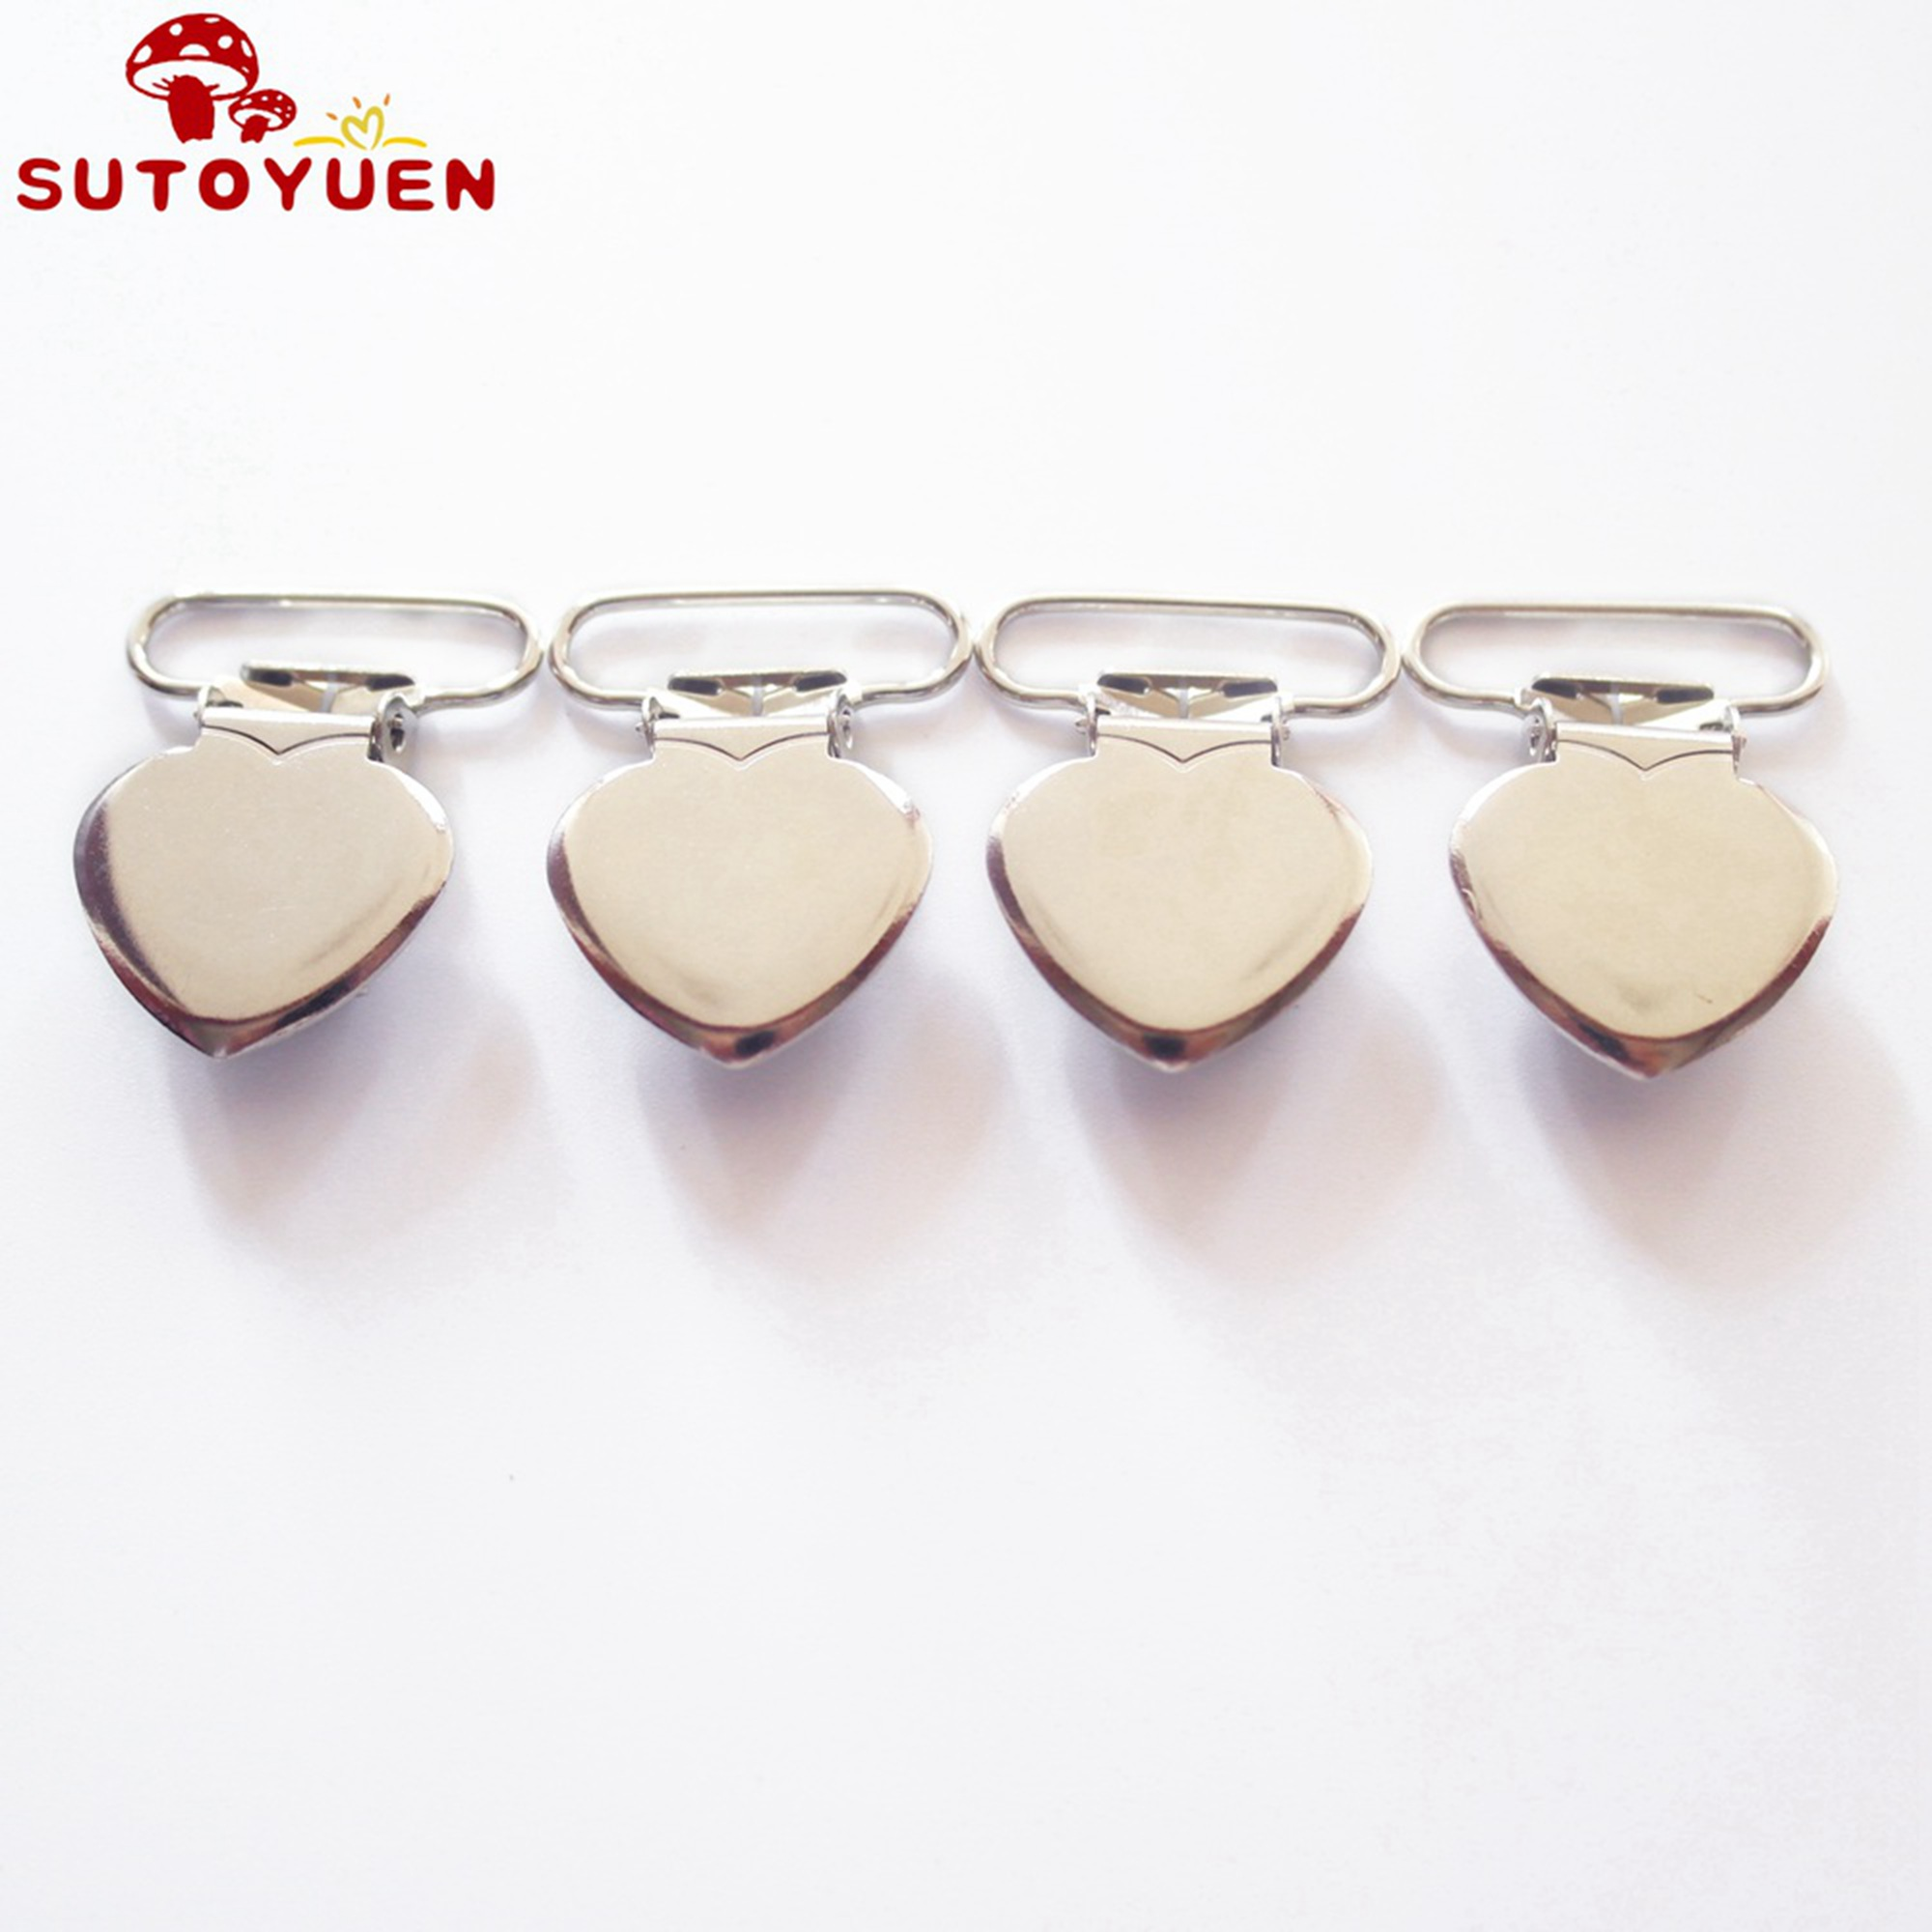 Free Shipping 100 pcs 1'' 25mm Silver Colored Heart Shaped Baby Pacifier Clips MAN  Dummy Clip Suspender Clip Rack Plating-in Pacifier from Mother & Kids    2